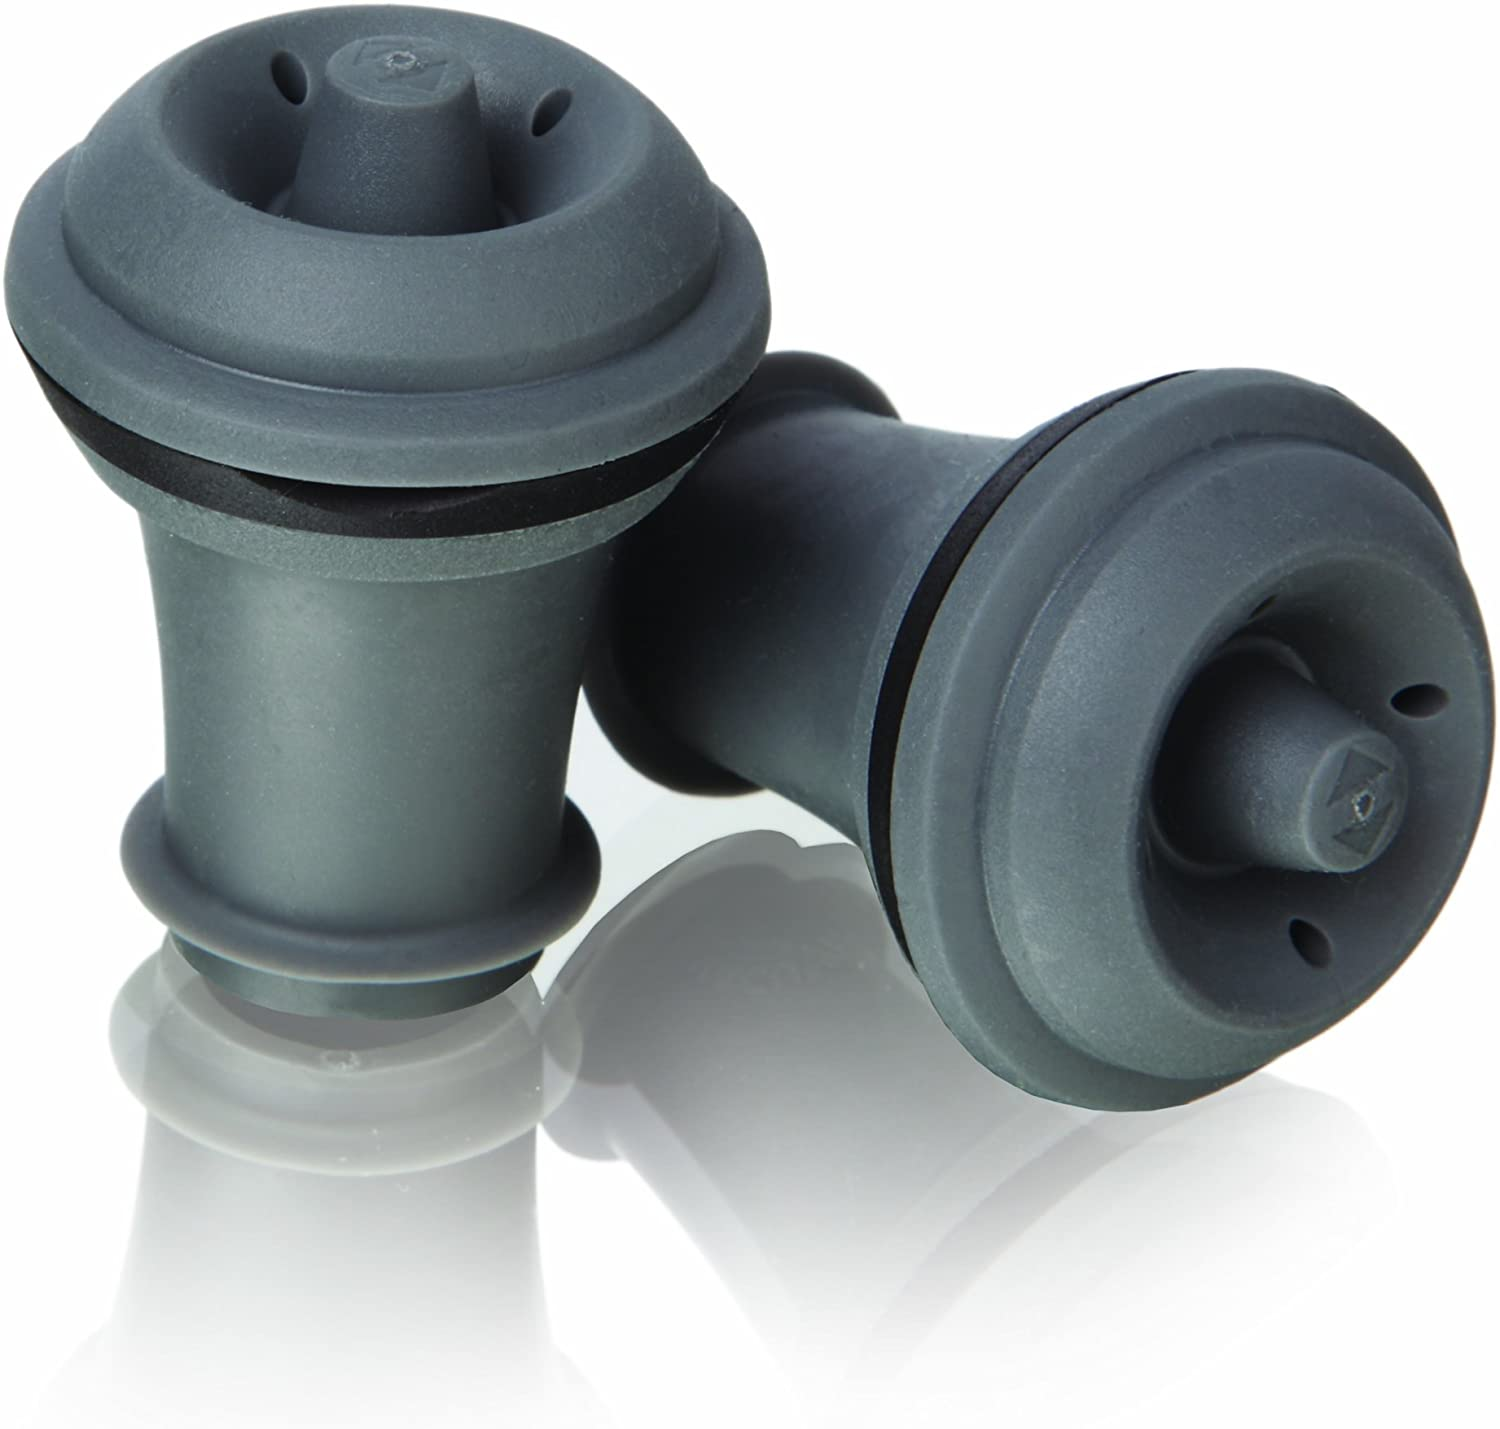 Vacu Vin Wine Saver Vacuum Stoppers Set of 2 – Grey